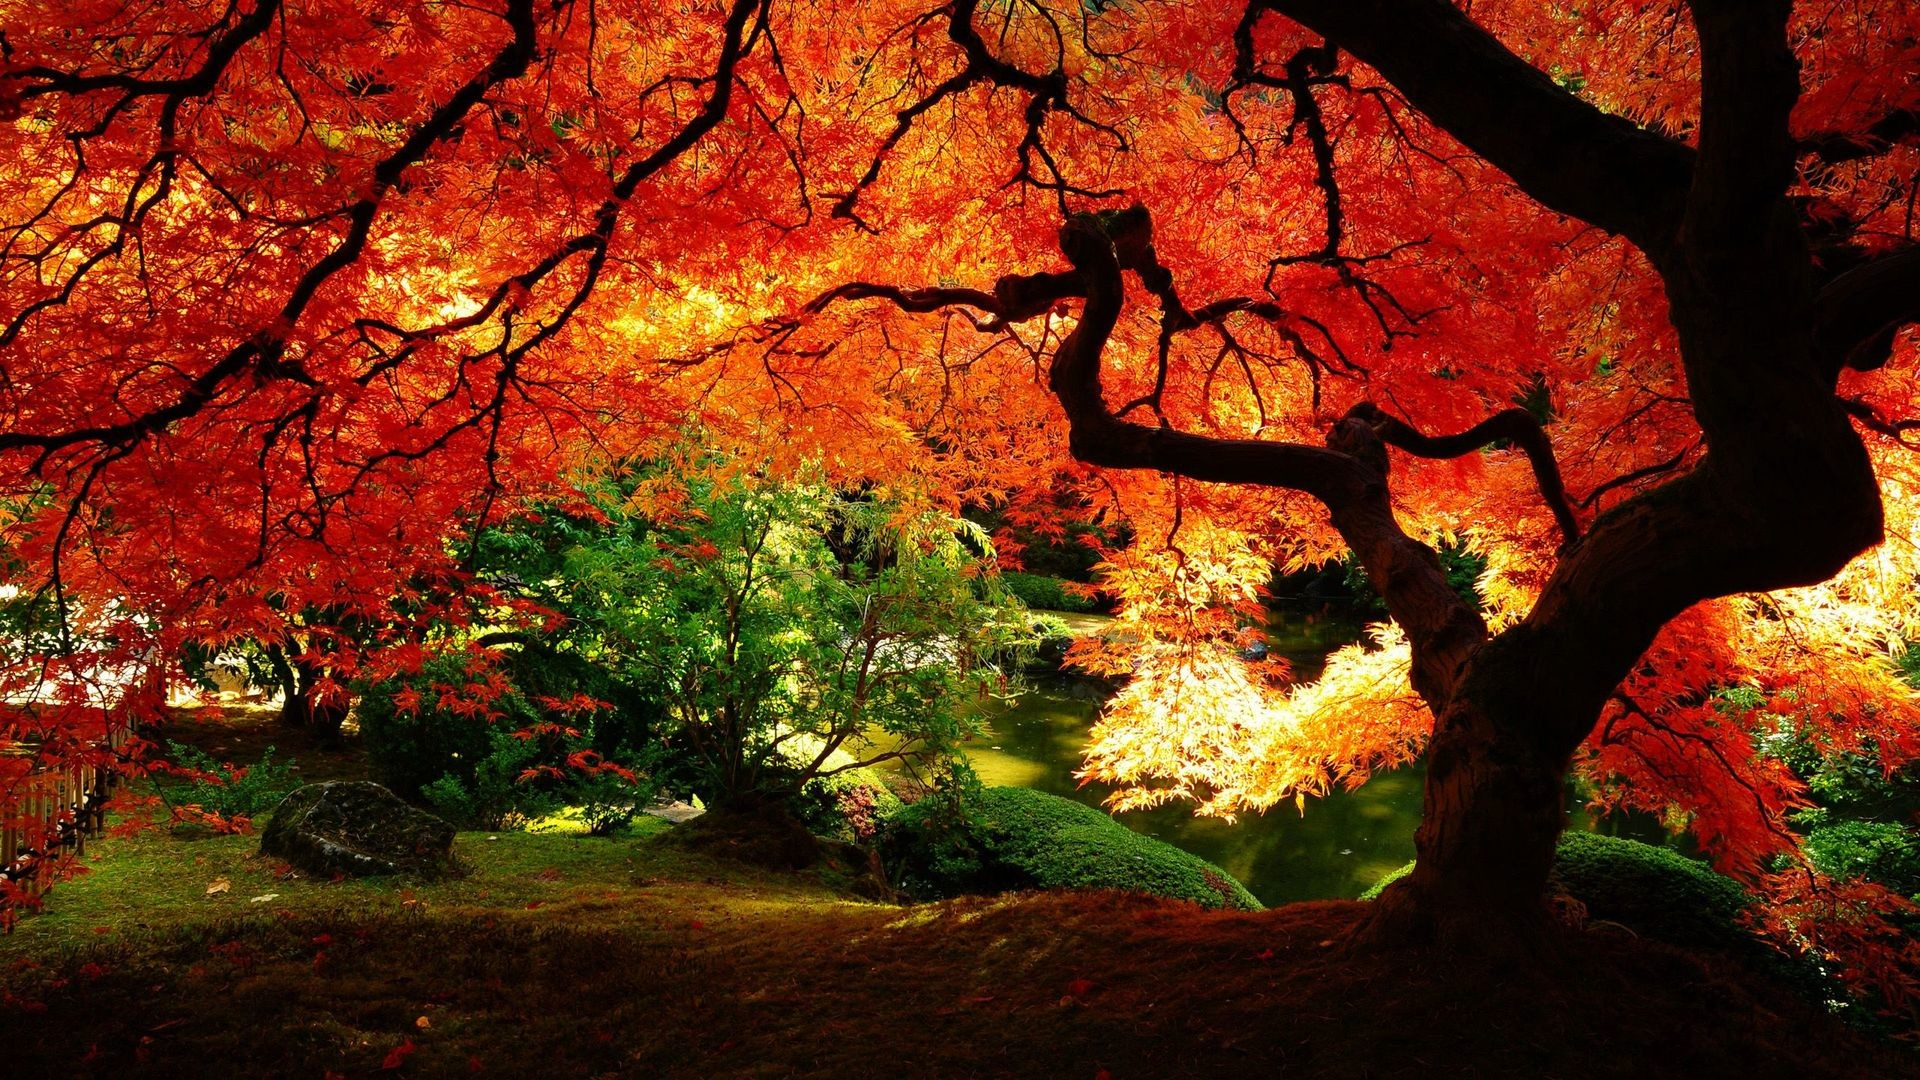 Beautiful Autumn Trees Wallpapers Images & Pictures – Becuo